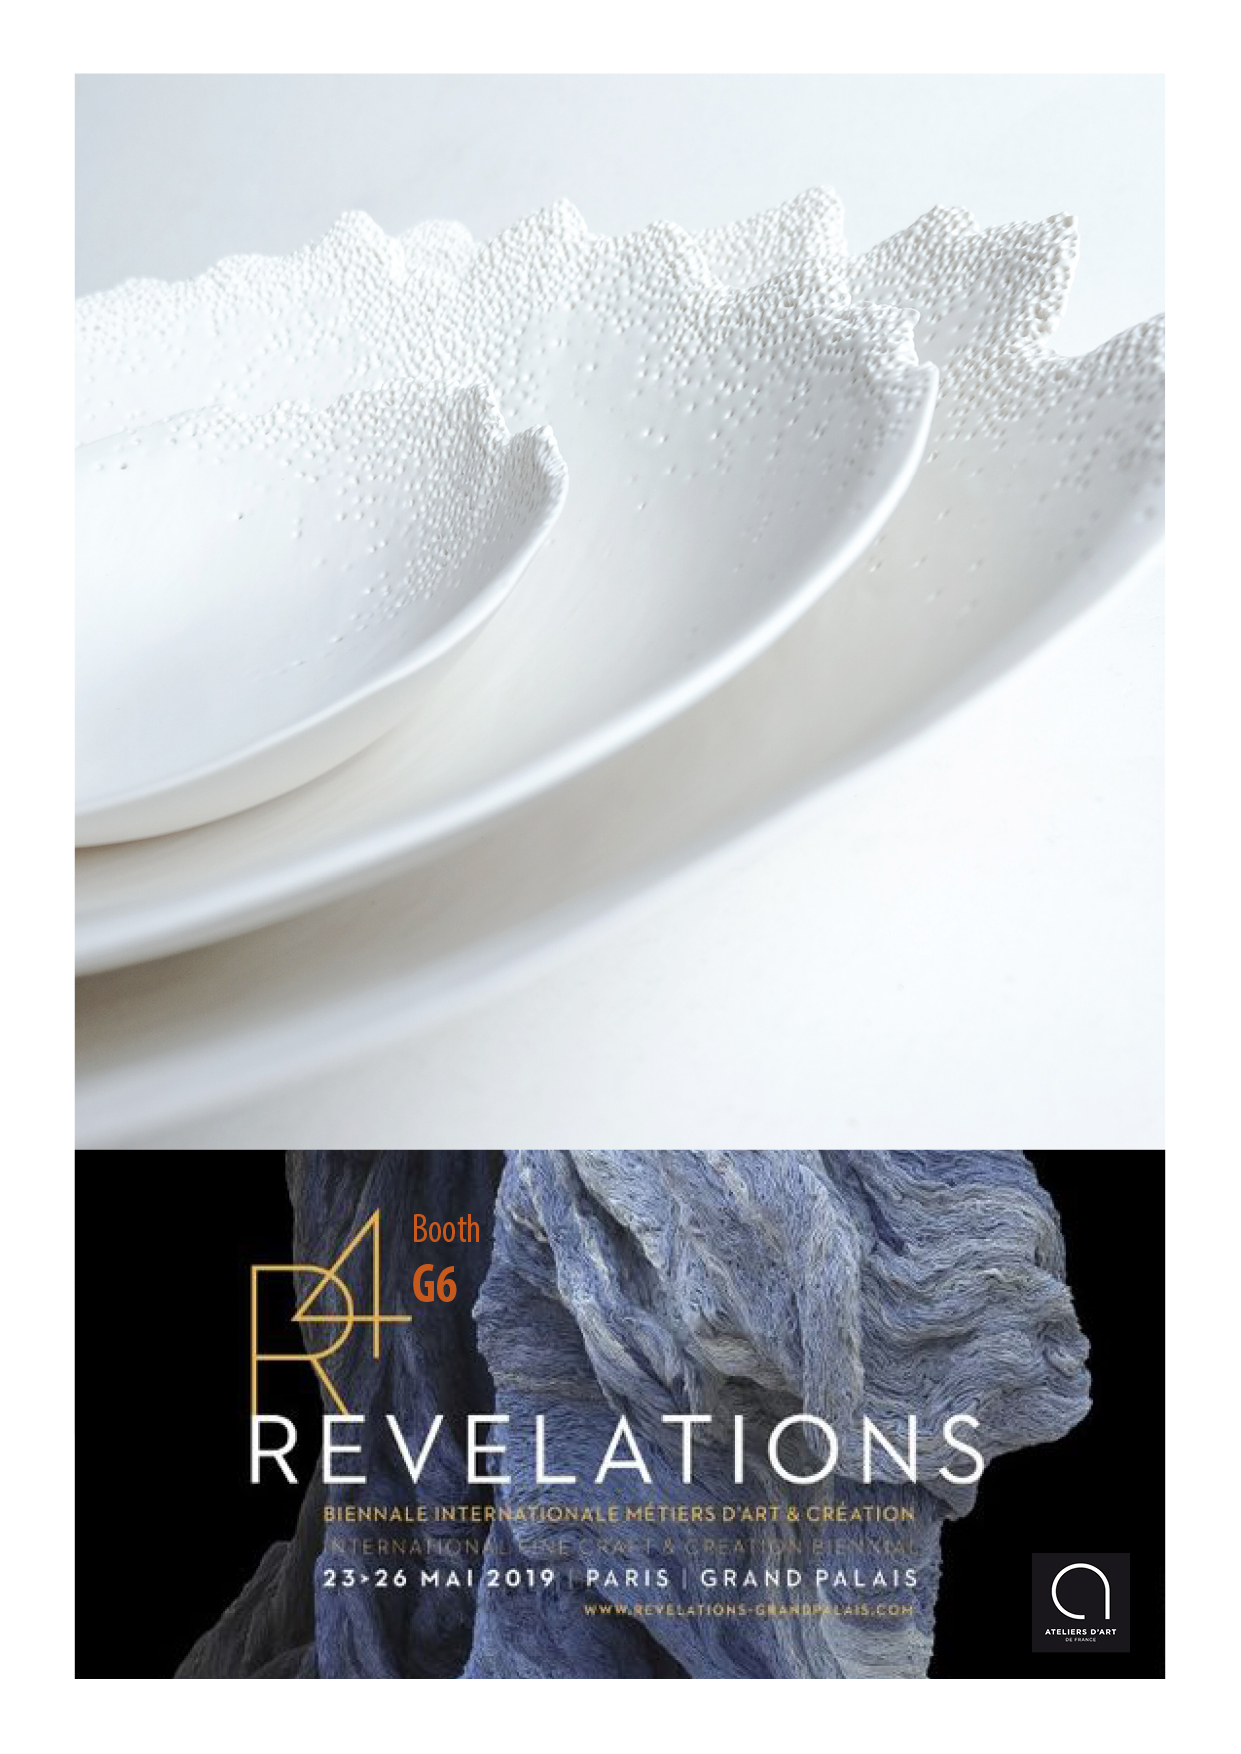 REVELATIONS 2019 - I am pleased to introduce my recent porcelain brand with Esprit Porcelaine LimogesFOAM: 2 delicate shallow dishes - diameter 26cm and 20 cmCARLOTTA: an elegant large platter/plate with hand-made black intervention - diameter 32cmMOHO: a serie of 3 organic salad bowls - high: 20cm, 13cm and 7cmBOOTH G6 - GRAND PALAIS, Paris - 23/26 Mai 2019Wednesday: Opening - 7pm > 10pmThursday > Saturday: 10 am > 8pm - Sunday 26: 10am > 7pmDetails: https://www.revelations-grandpalais.com/fr/